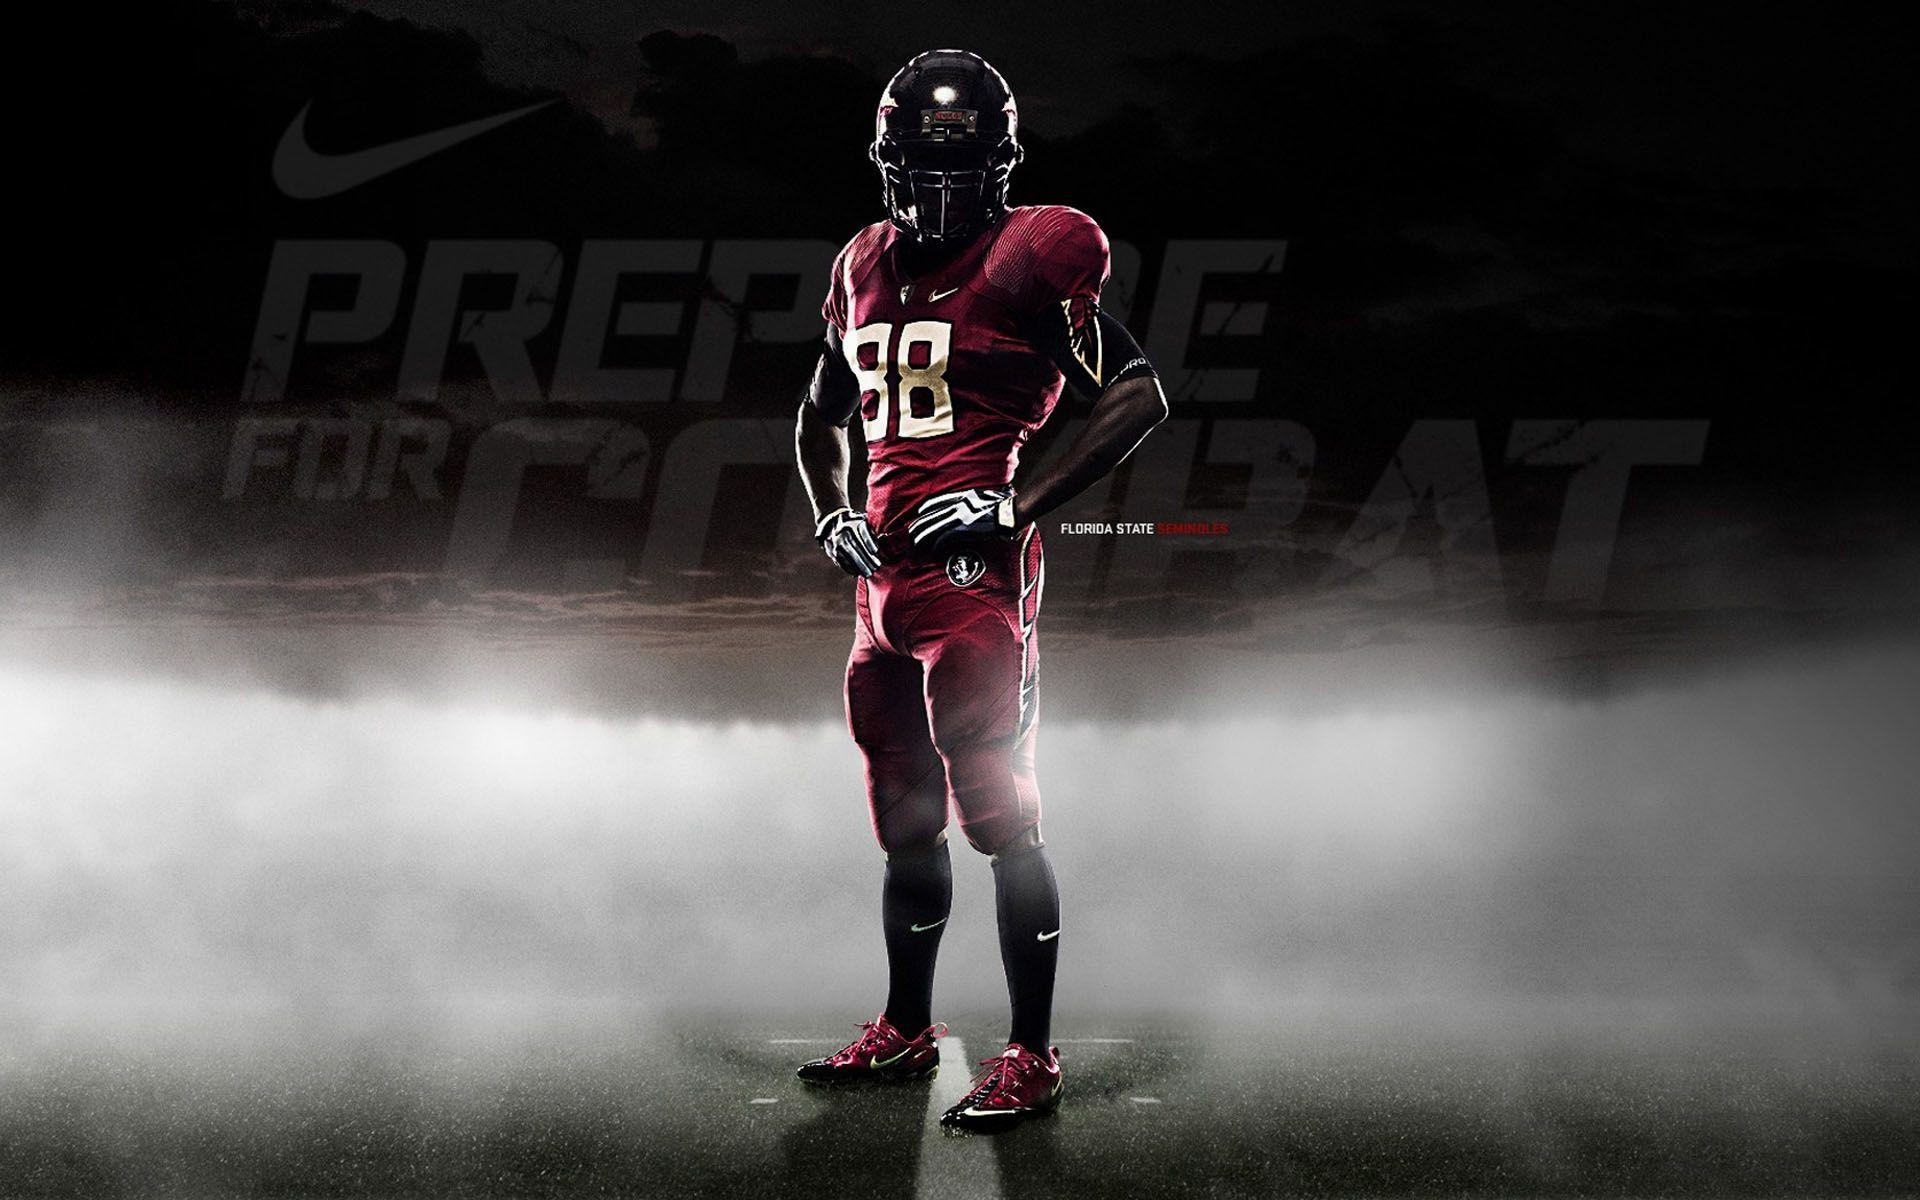 wallpaper.wiki-Images-HD-American-Football-1-PIC-